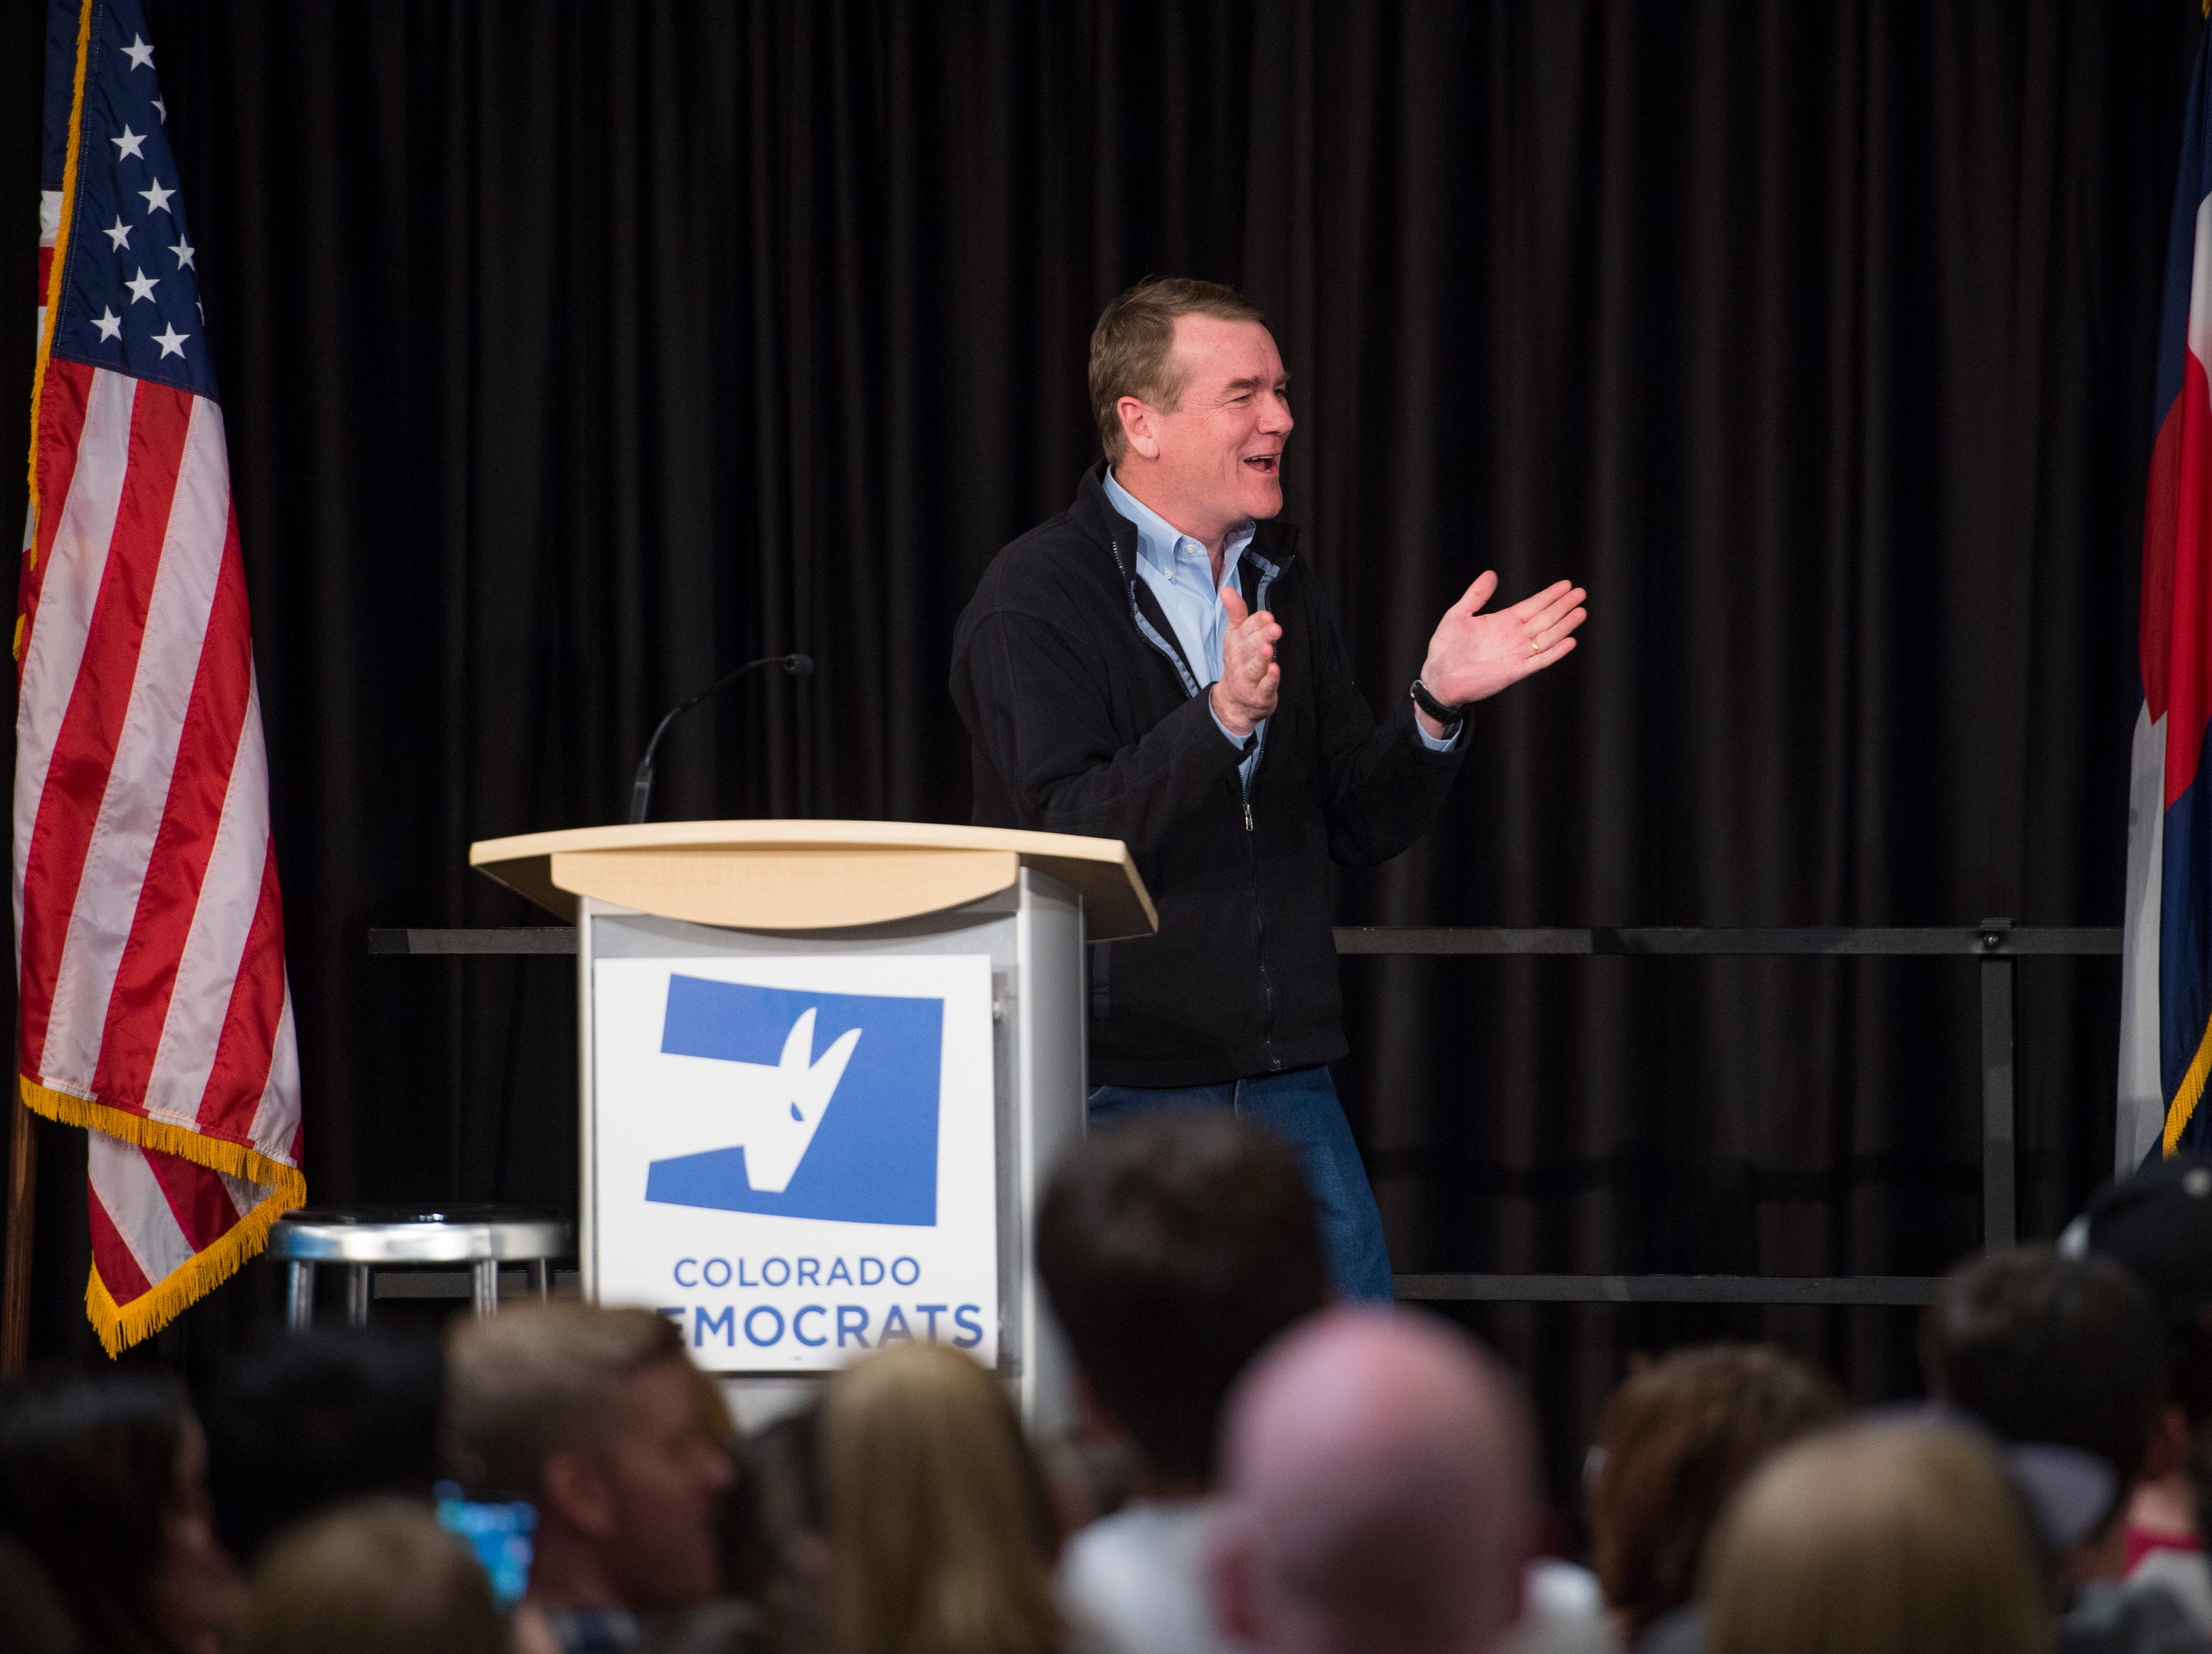 U.S. Sen. Michael Bennett speaks at Colorado Democrats rally featuring Democratic candidate for Colorado Governor Jared Polis, U.S. Sen. Bernie Sanders and congressional candidate Joe Neguse at the Lory Student Center at CSU on Wednesday, October 24, 2018.